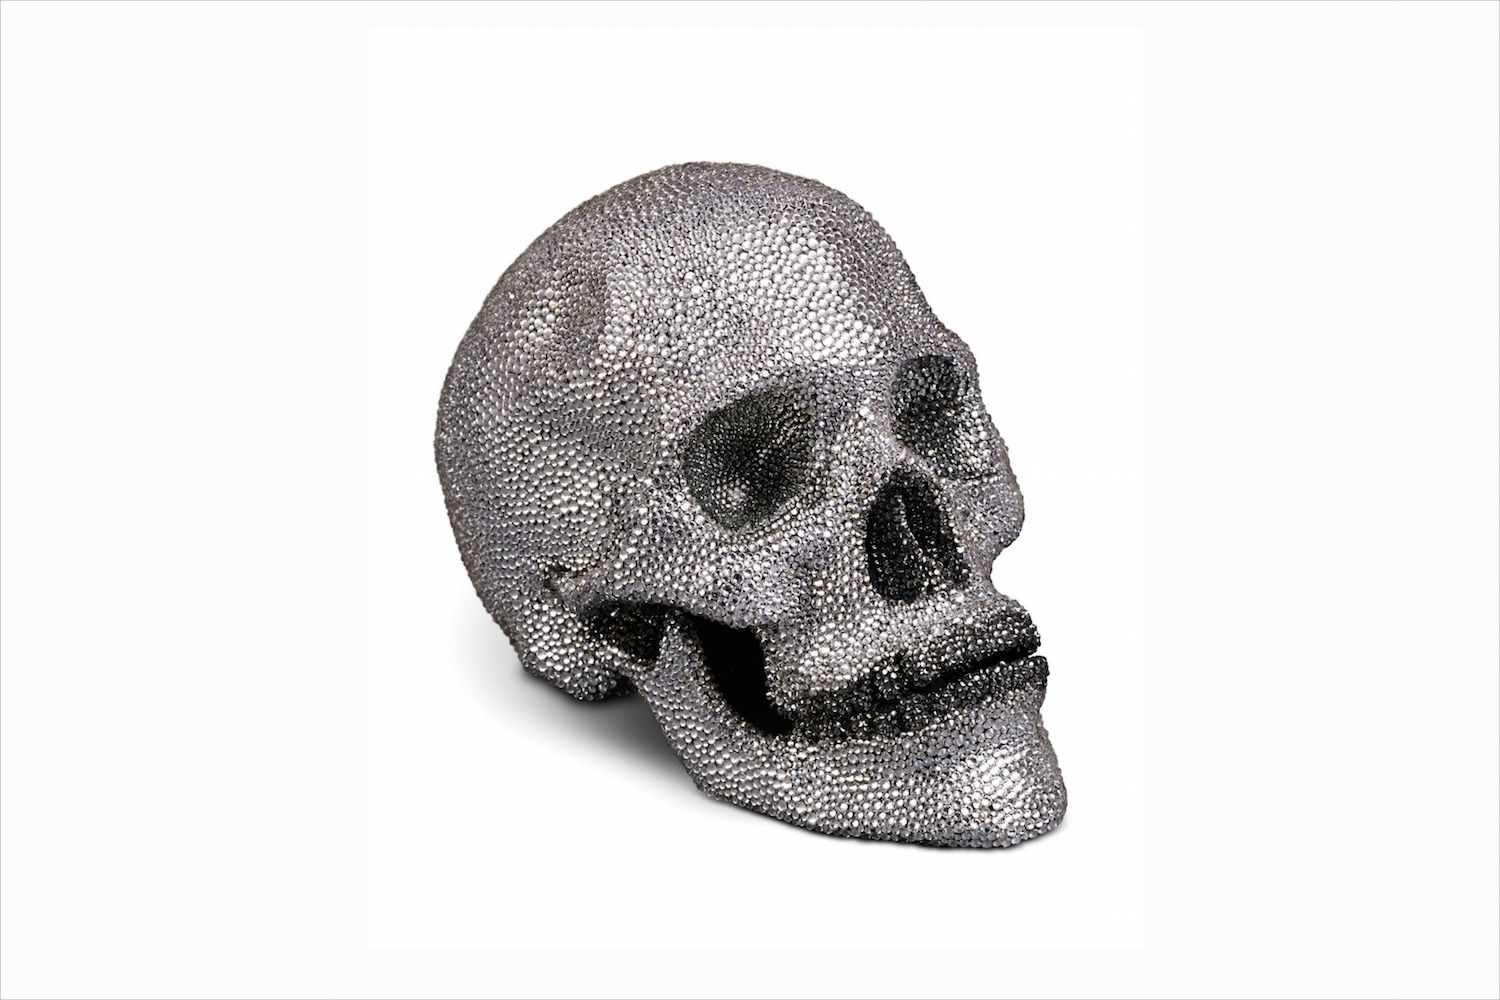 Halloween Wedding Ideas, Gifts, and Accessories - Inside Weddings